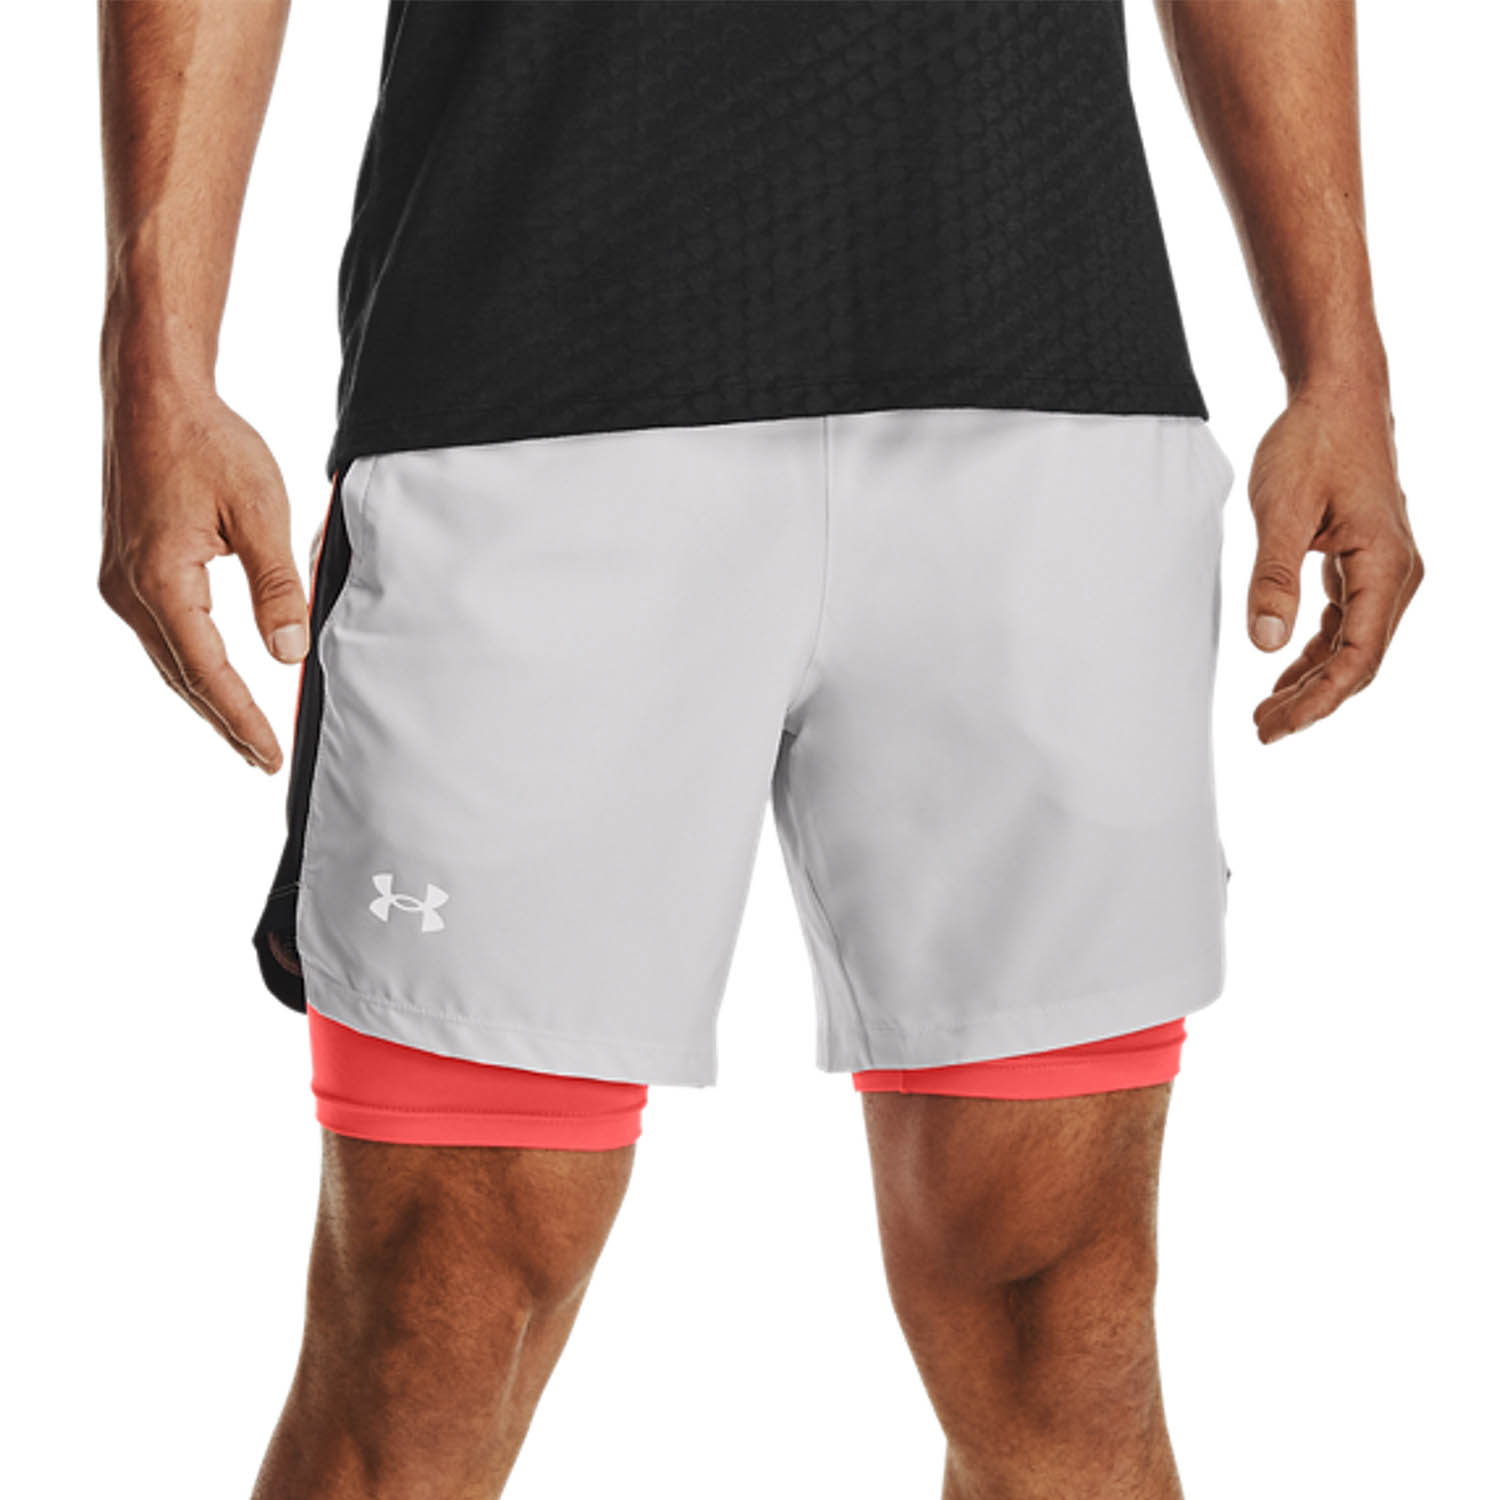 Under Armour Launch 2 in 1 7in Shorts - Halo Gray/Black/Reflective